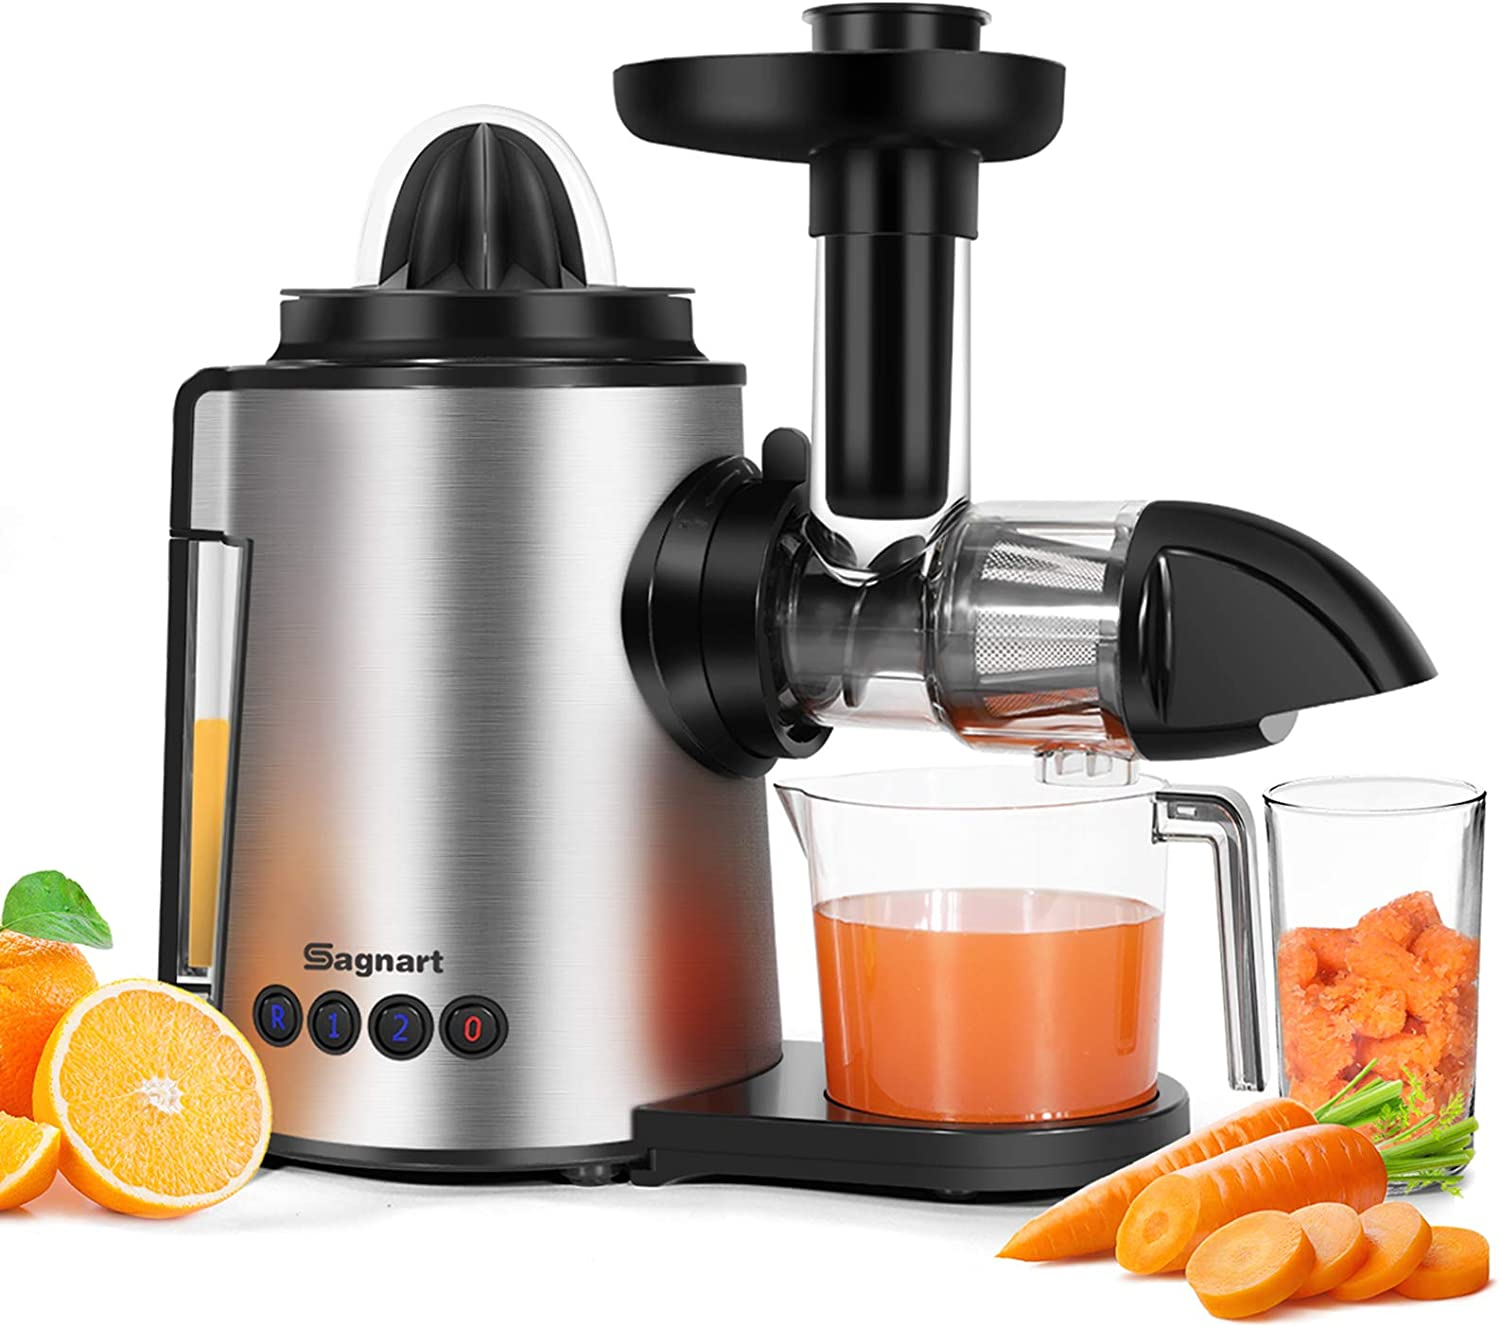 Best Juicer for Carrots 2021 - Reviews & Buying Guide 5